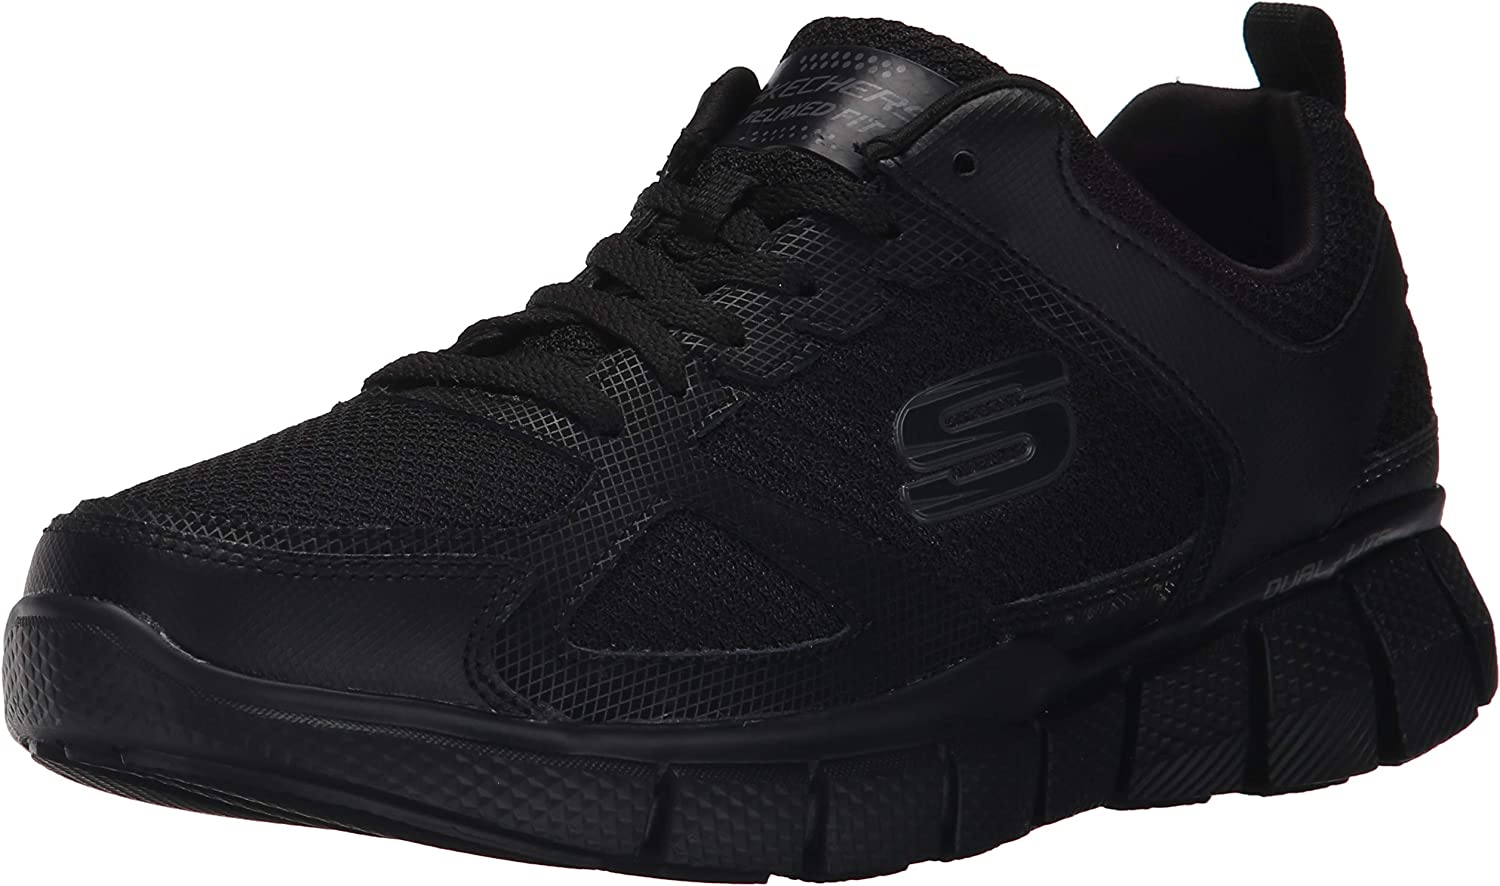 | Skechers Men's Equalizer 2.0 True Balance Sneaker | Fitness & Cross-Training